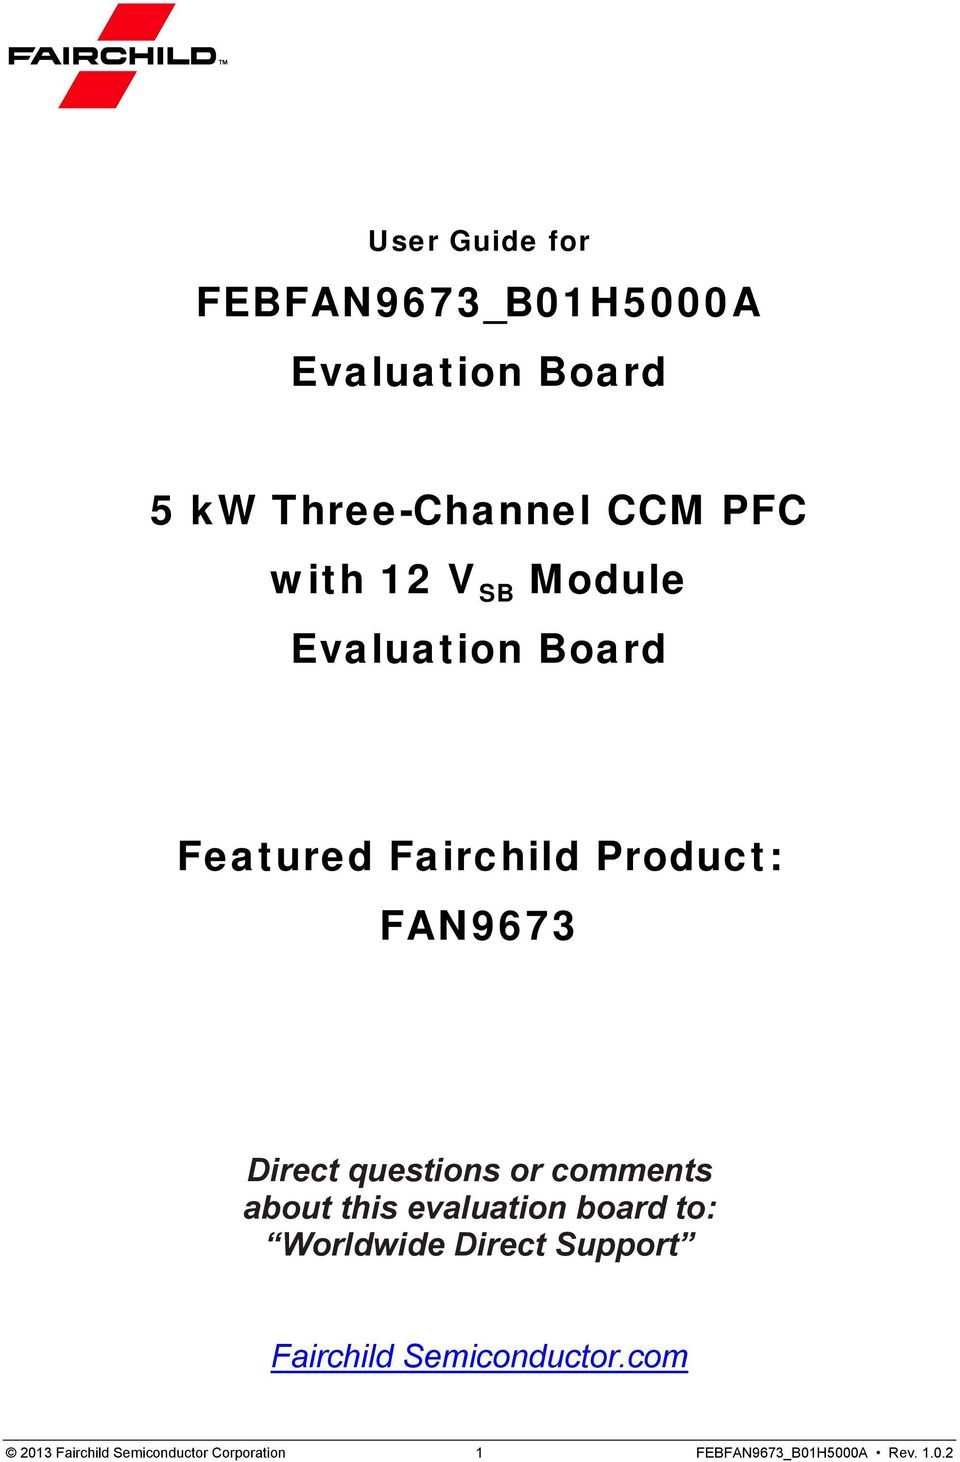 Febfan9673 B01h5000a Evaluation Board 5 Kw Three Channel Ccm Pfc Fig 3 Boost Converter Or Comments About This To Worldwide Direct Support Fairchild